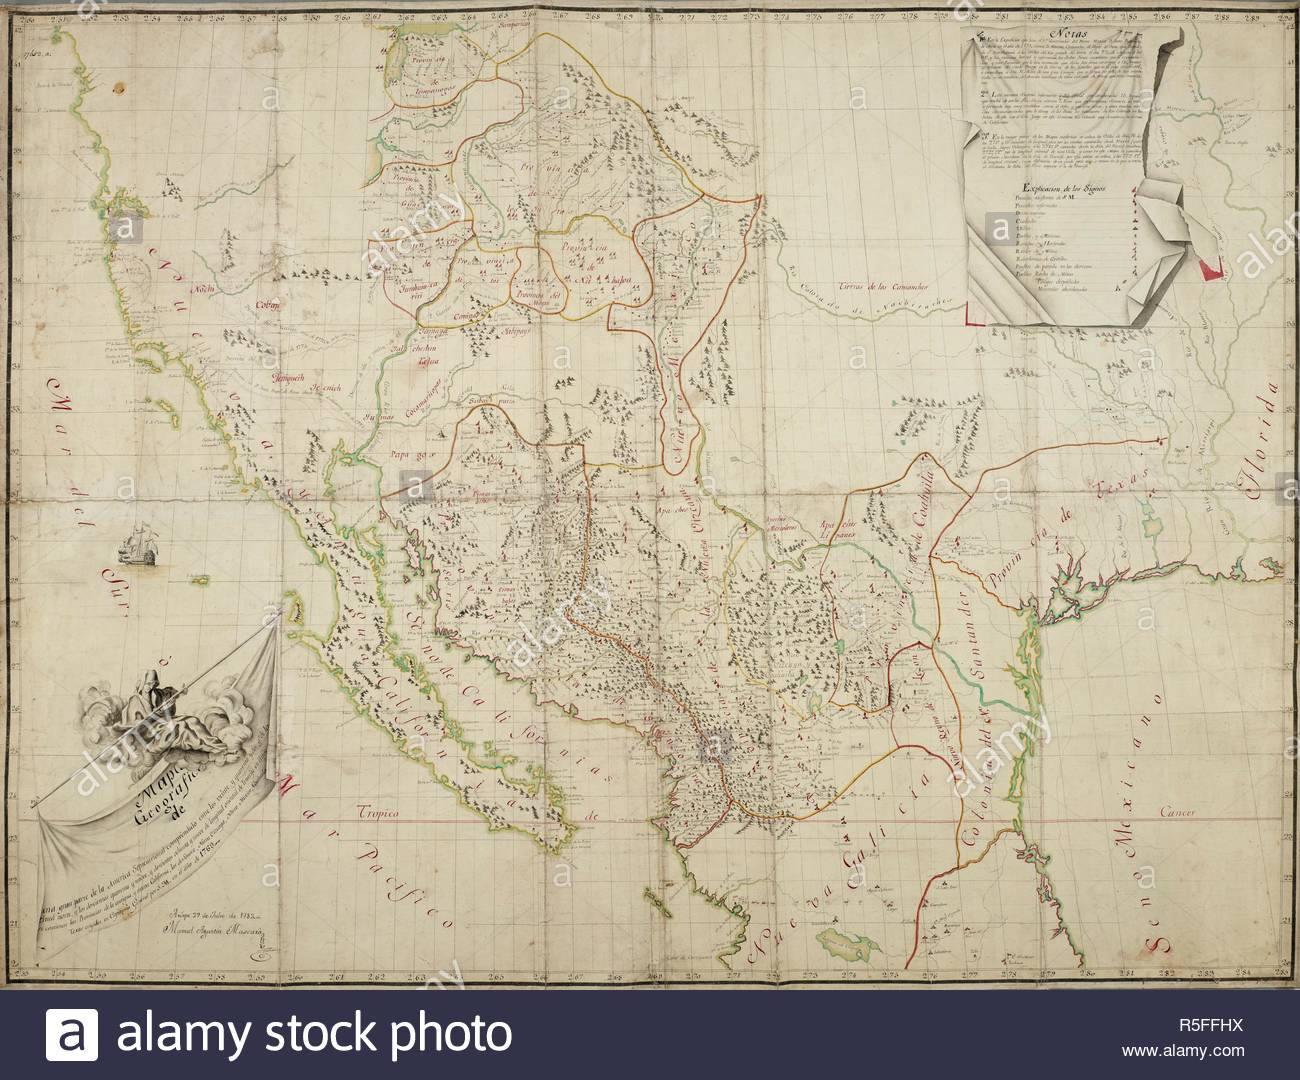 Map Of The Provincias Internas De La Commandancia De Chihuahua - Map Of Southern California And Northern Mexico